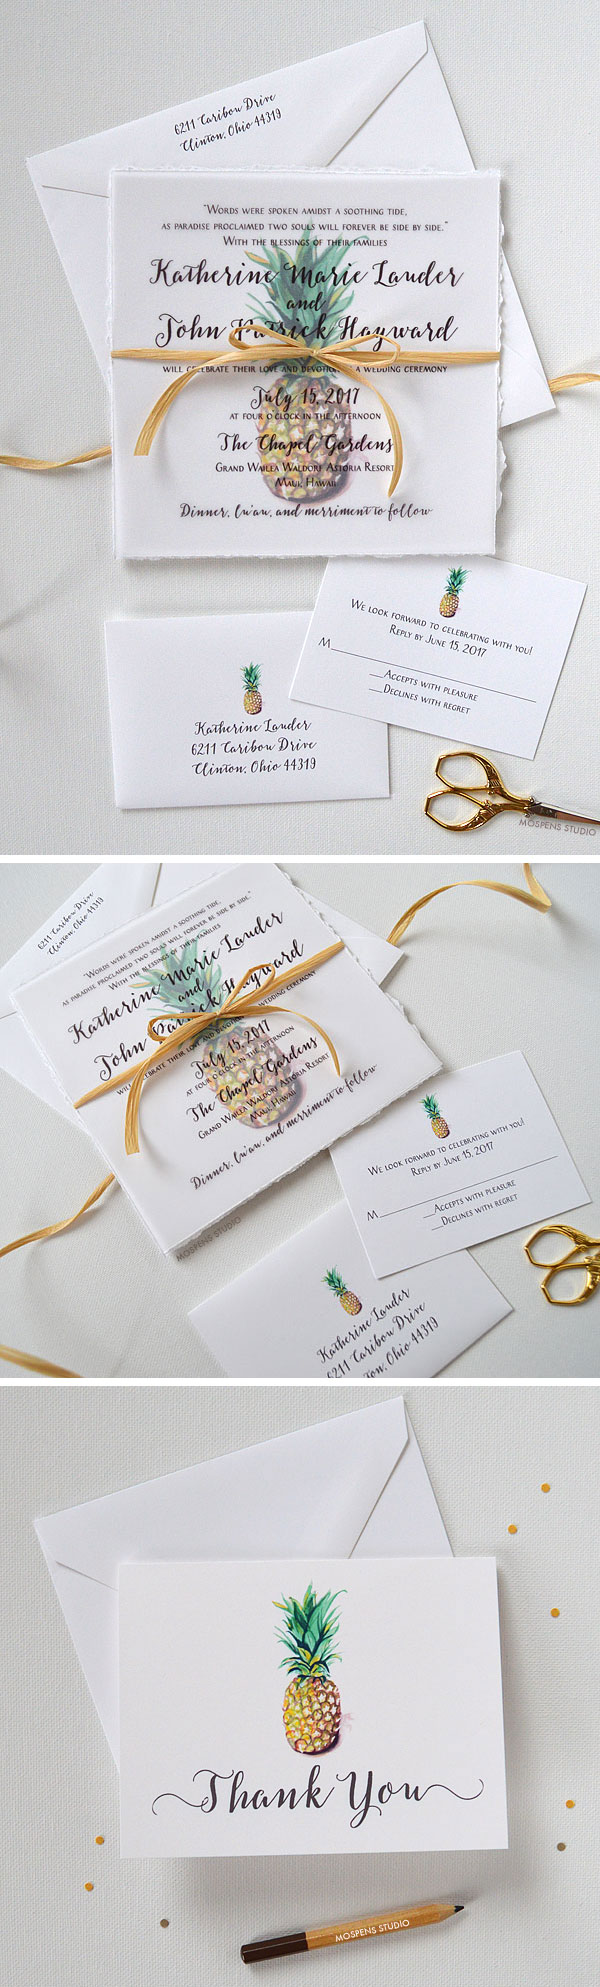 ALOHA! The Pineapple Wedding Invitation design features hand-torn deckled edges, pineapple watercolor art, and lovely hand-tied wraphia. Overlay with text reveals a pineapple print keepsake for your guests. Now available! - www.mospensstudio.com